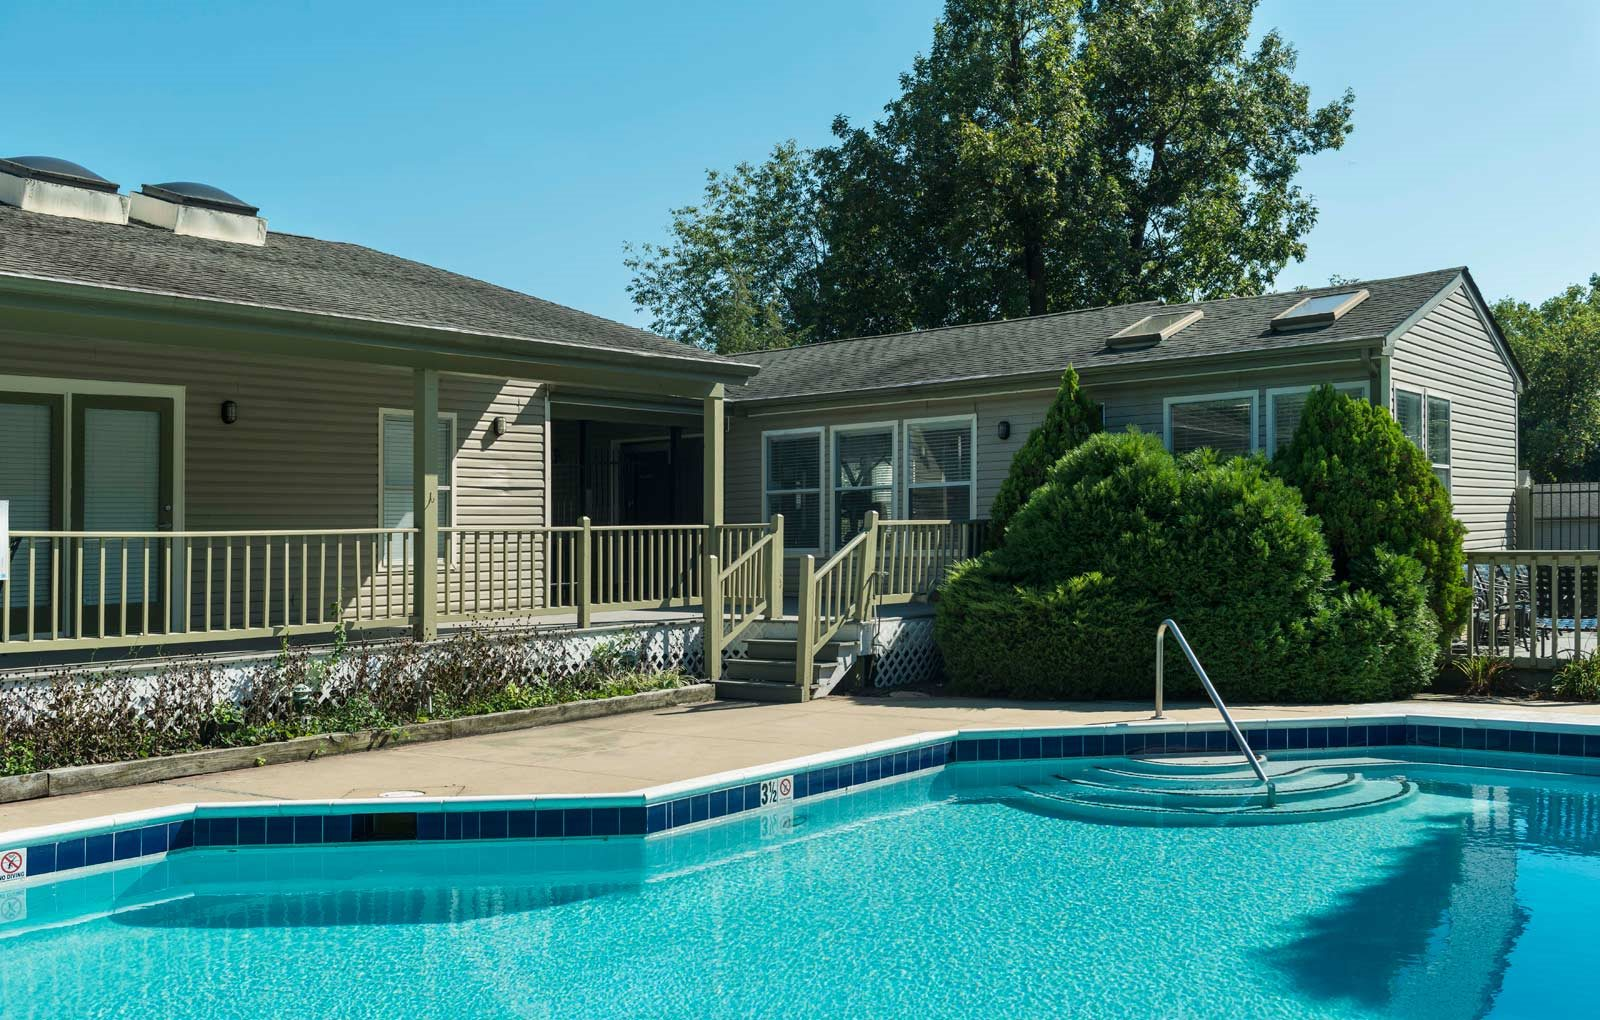 Luxurious Pool with Sundeck and Cabanas at The Douglas at Constant Friendship, Maryland, 21009